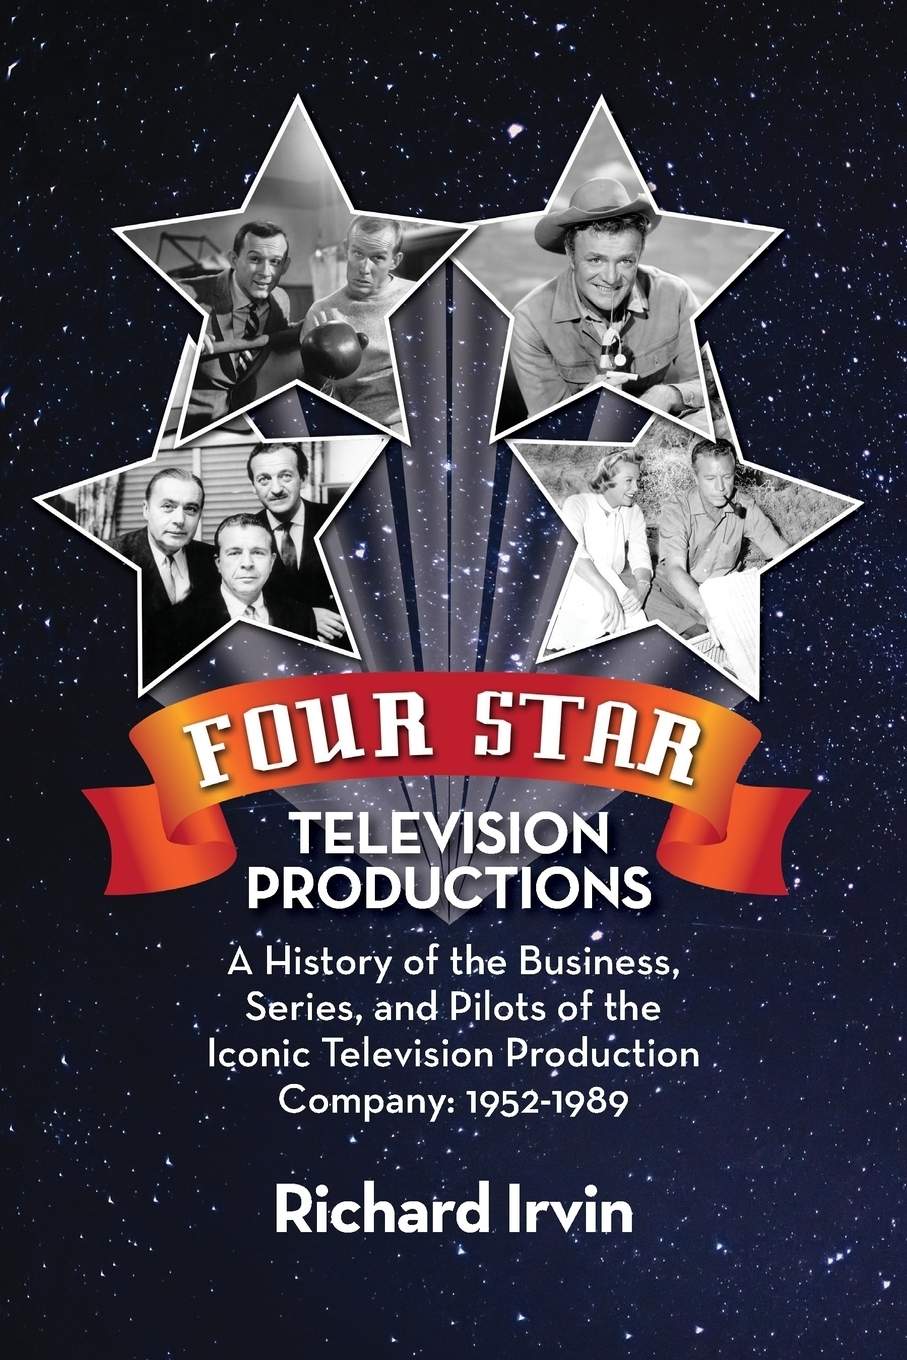 Richard Irvin Four Star Television Productions. A History of the Business, Series, and Pilots Iconic Production Company: 1952-1989